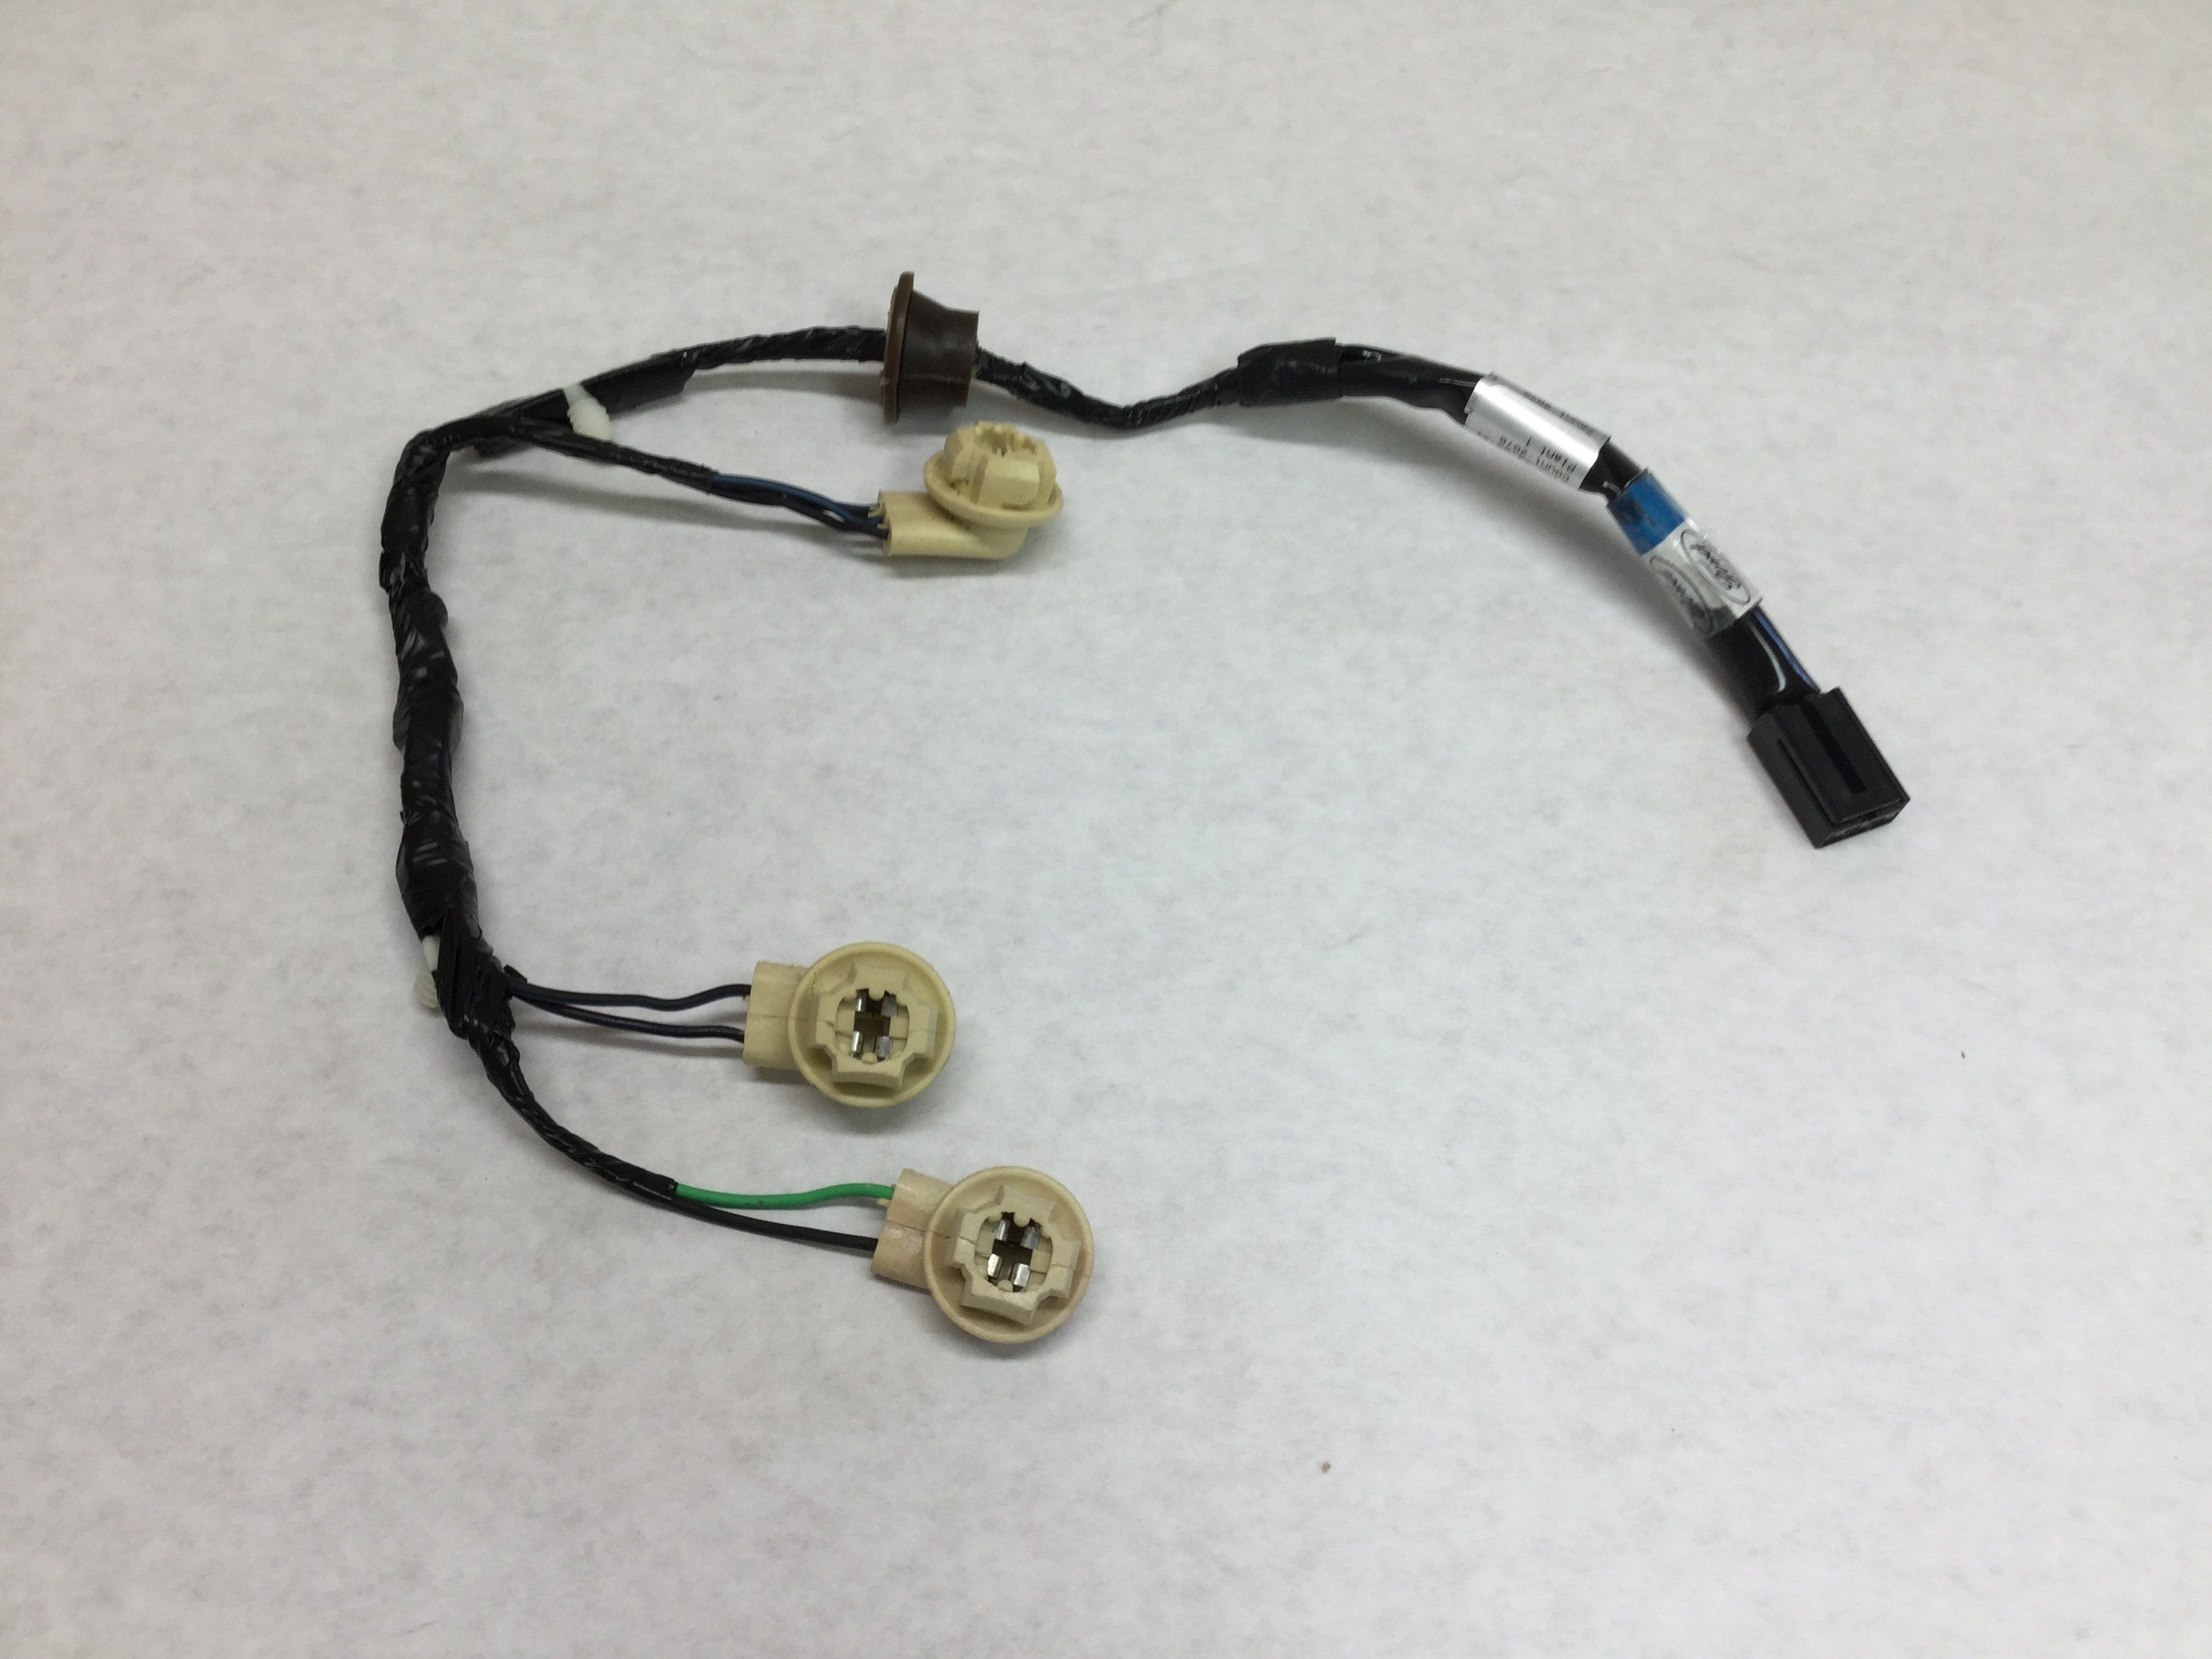 1997 2003 ford f 150 third brake light high mount stop lamp wiring harness new auto truck genuine car parts [ 3264 x 2448 Pixel ]